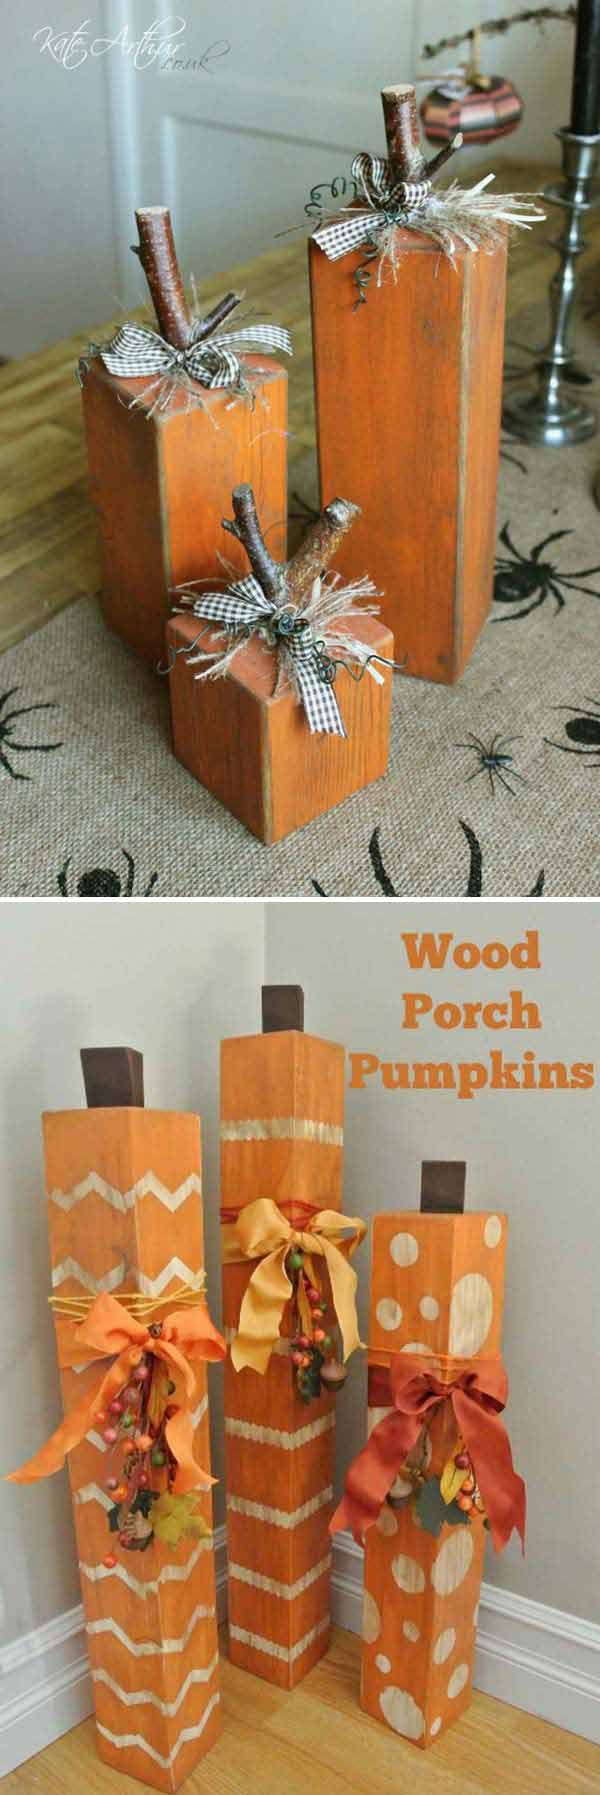 20 halloween decorations crafted from reclaimed wood - Fall Halloween Decorations